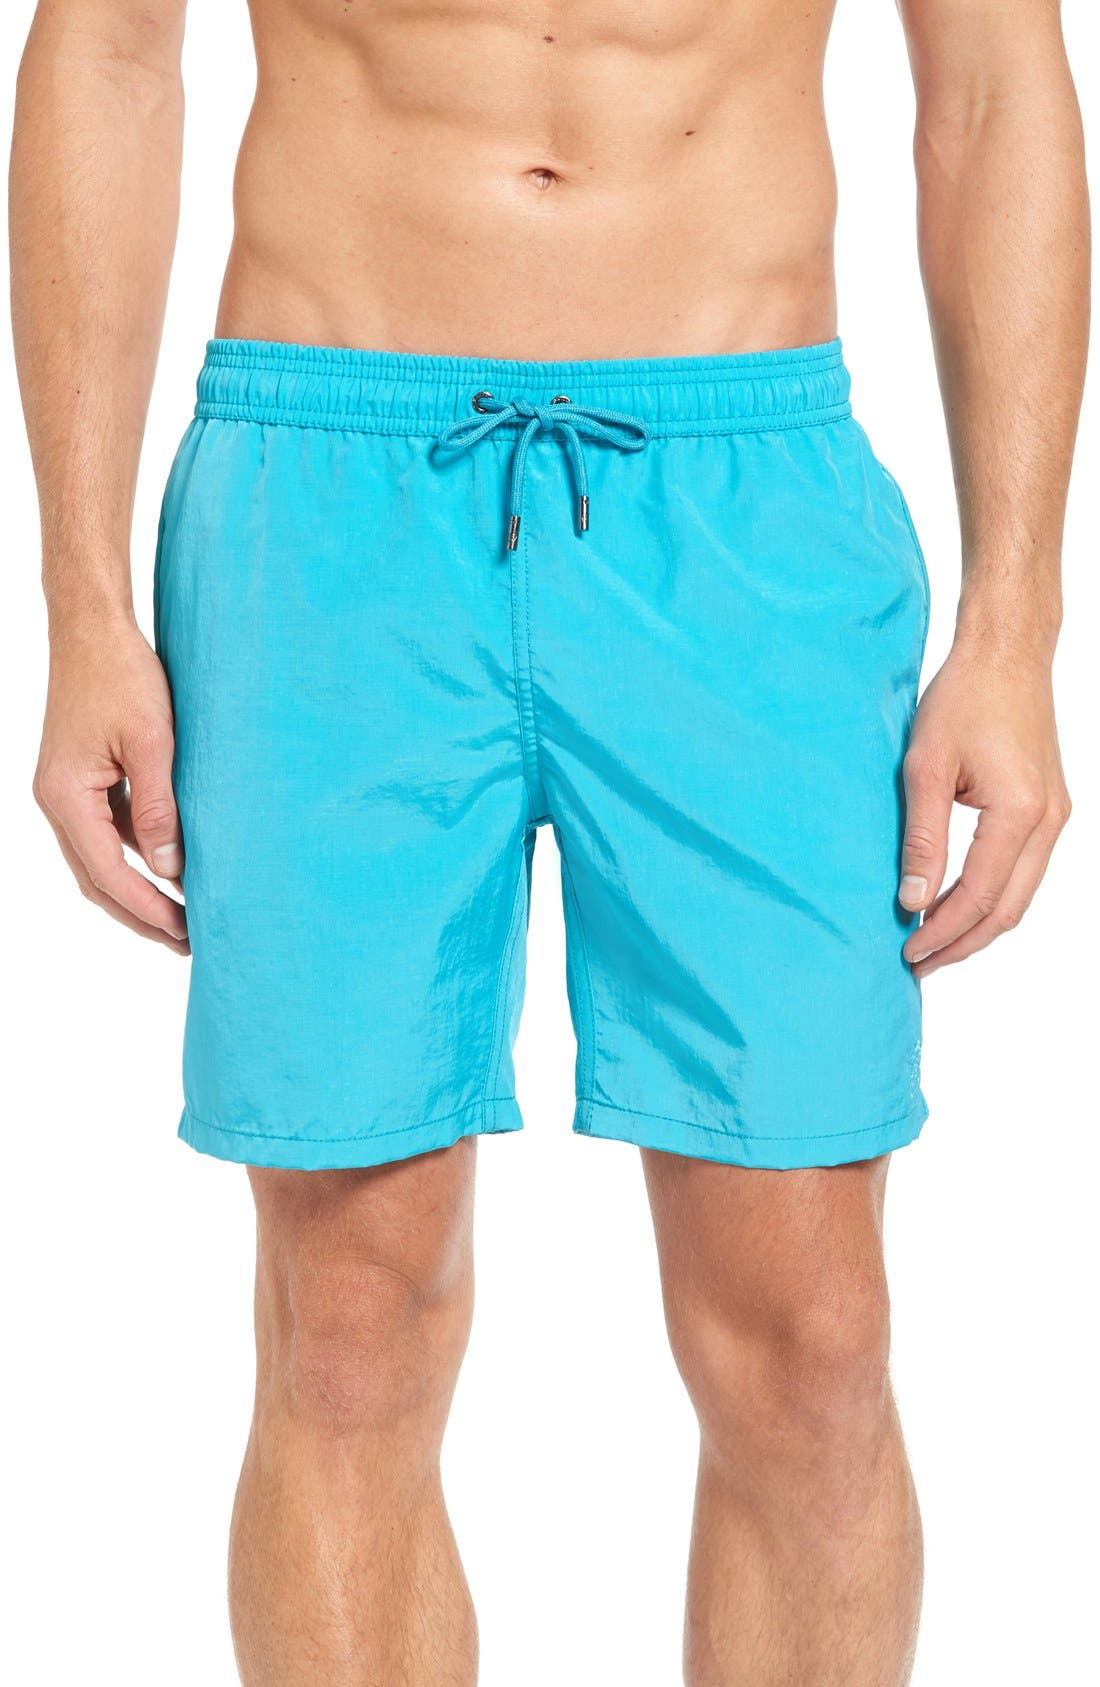 Cerulean Solid Swim Trunks,                             Main thumbnail 1, color,                             450